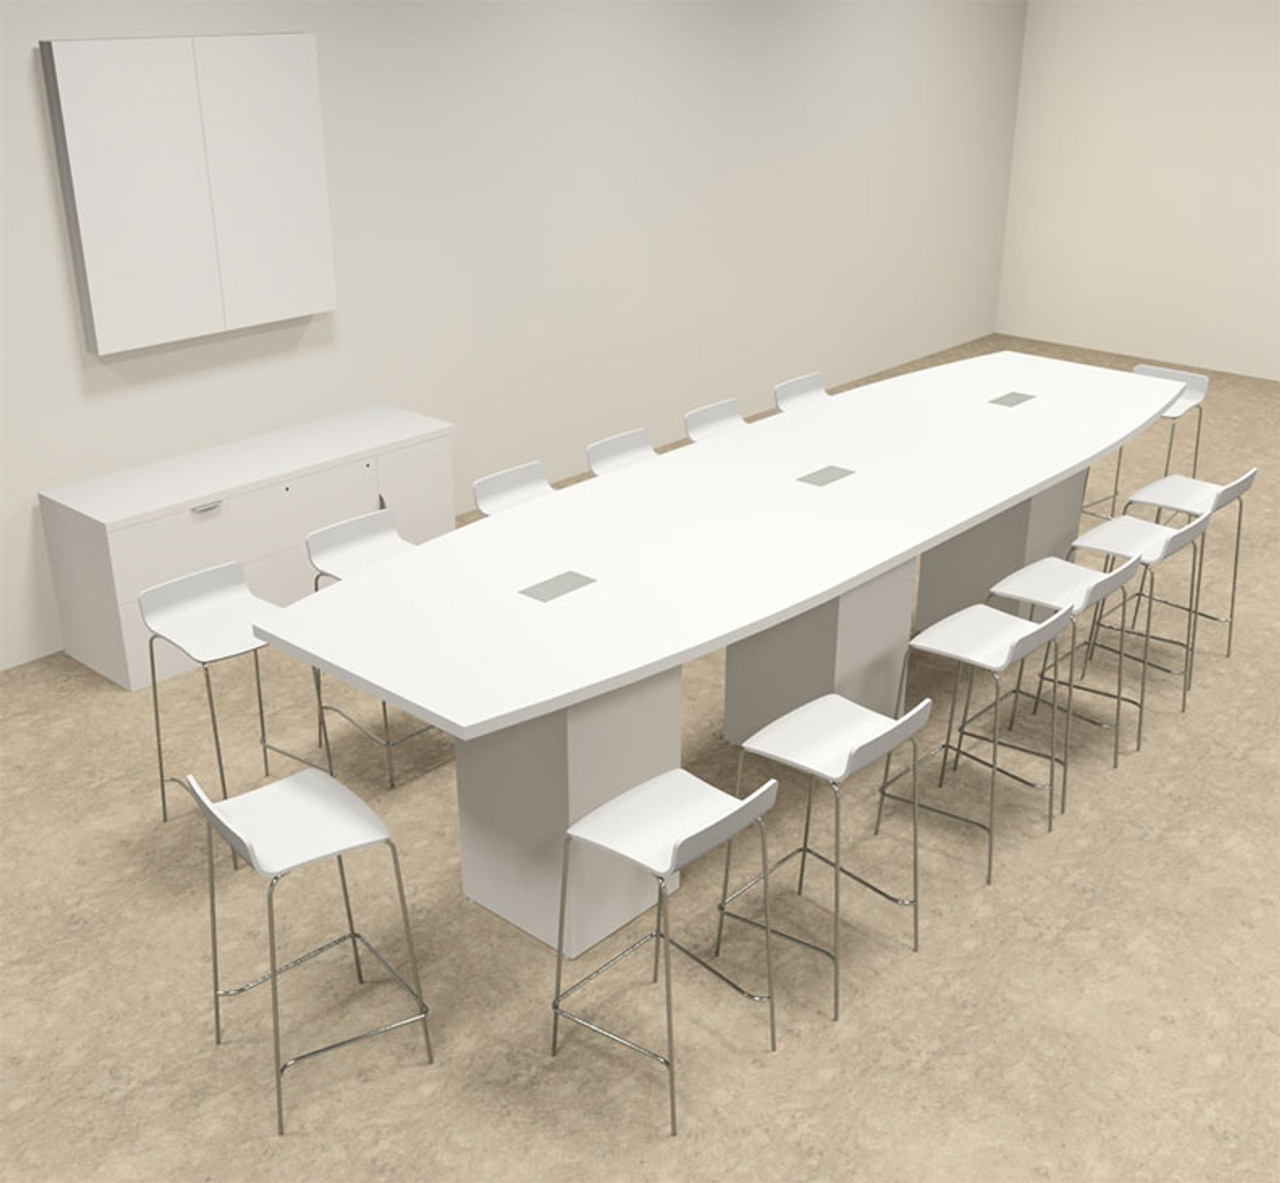 Boat Shape Counter Height Feet Conference Table OFCONCT - 14 foot conference table